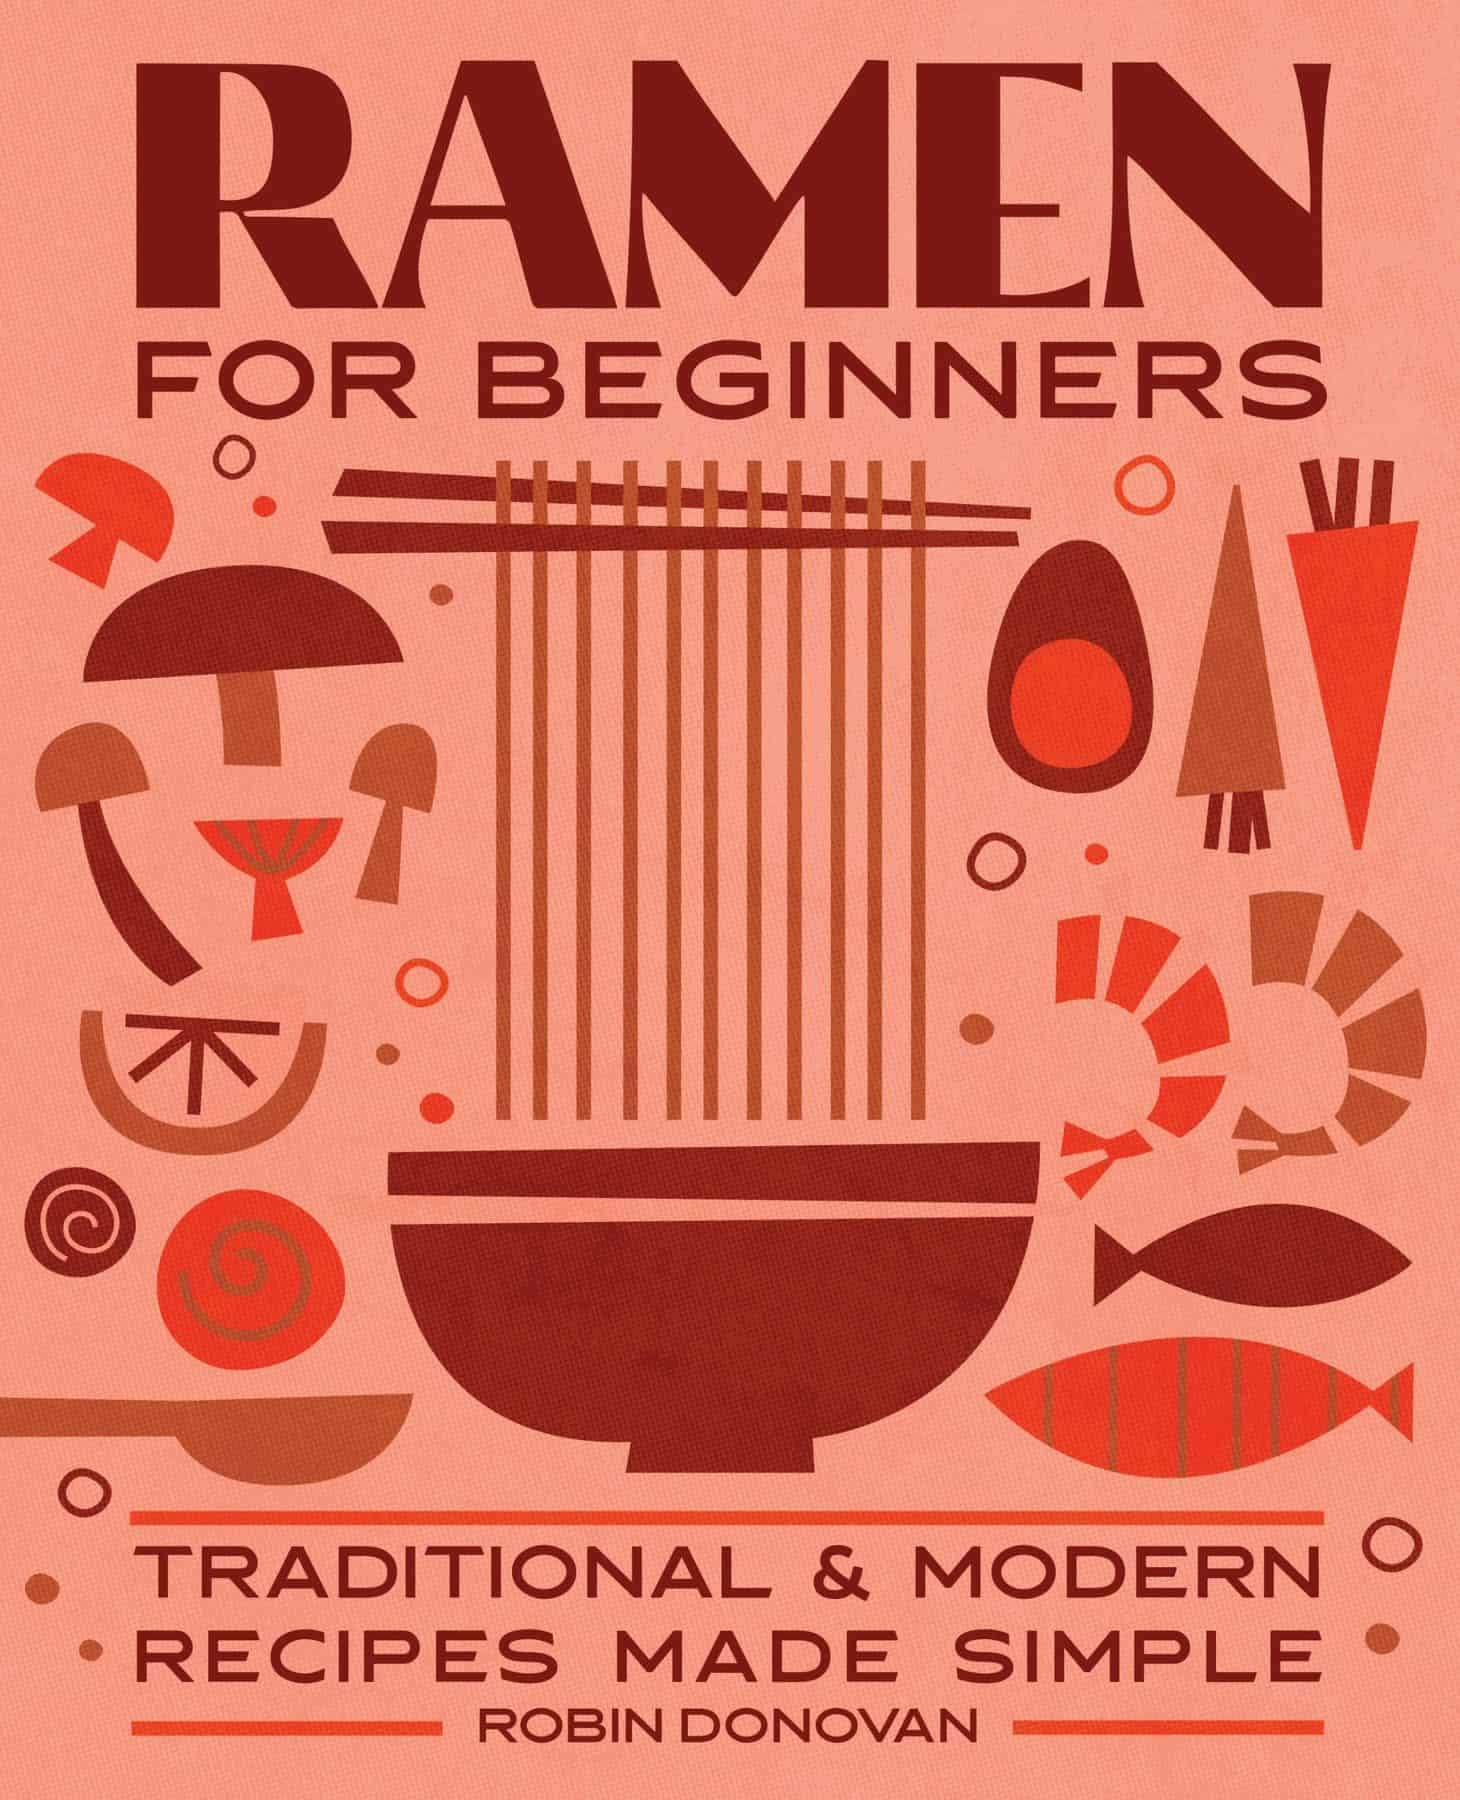 Ramen for Beginners cookbook cover